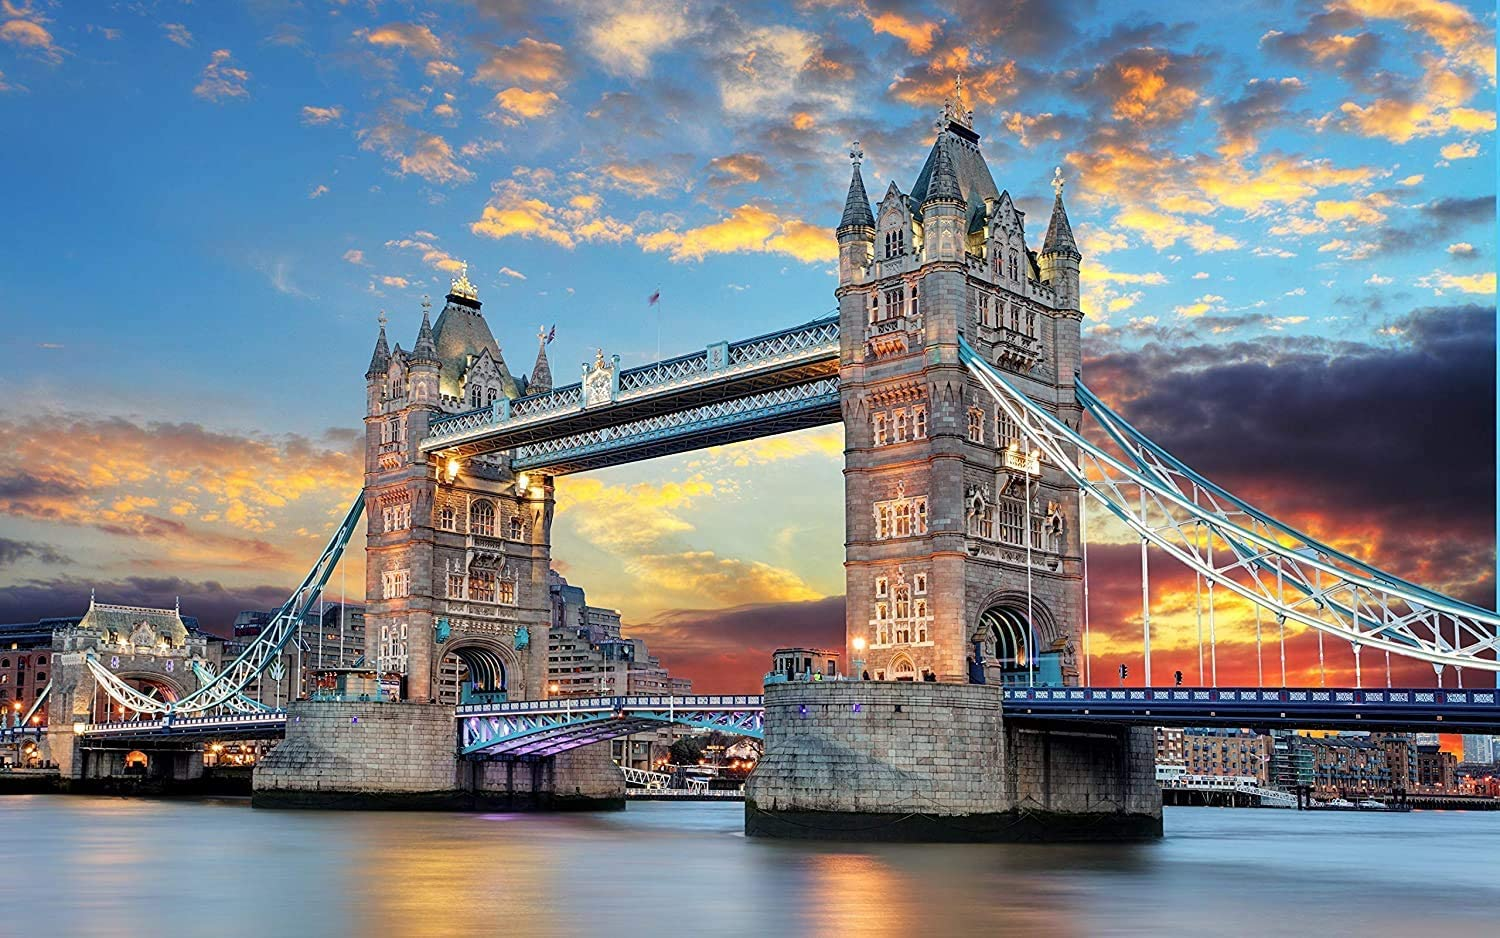 Jigsaw Puzzles 1000 Pieces for Adults Kids Tower Bridge Puzzle Educational Intellectual Decompressing Fun Family Game